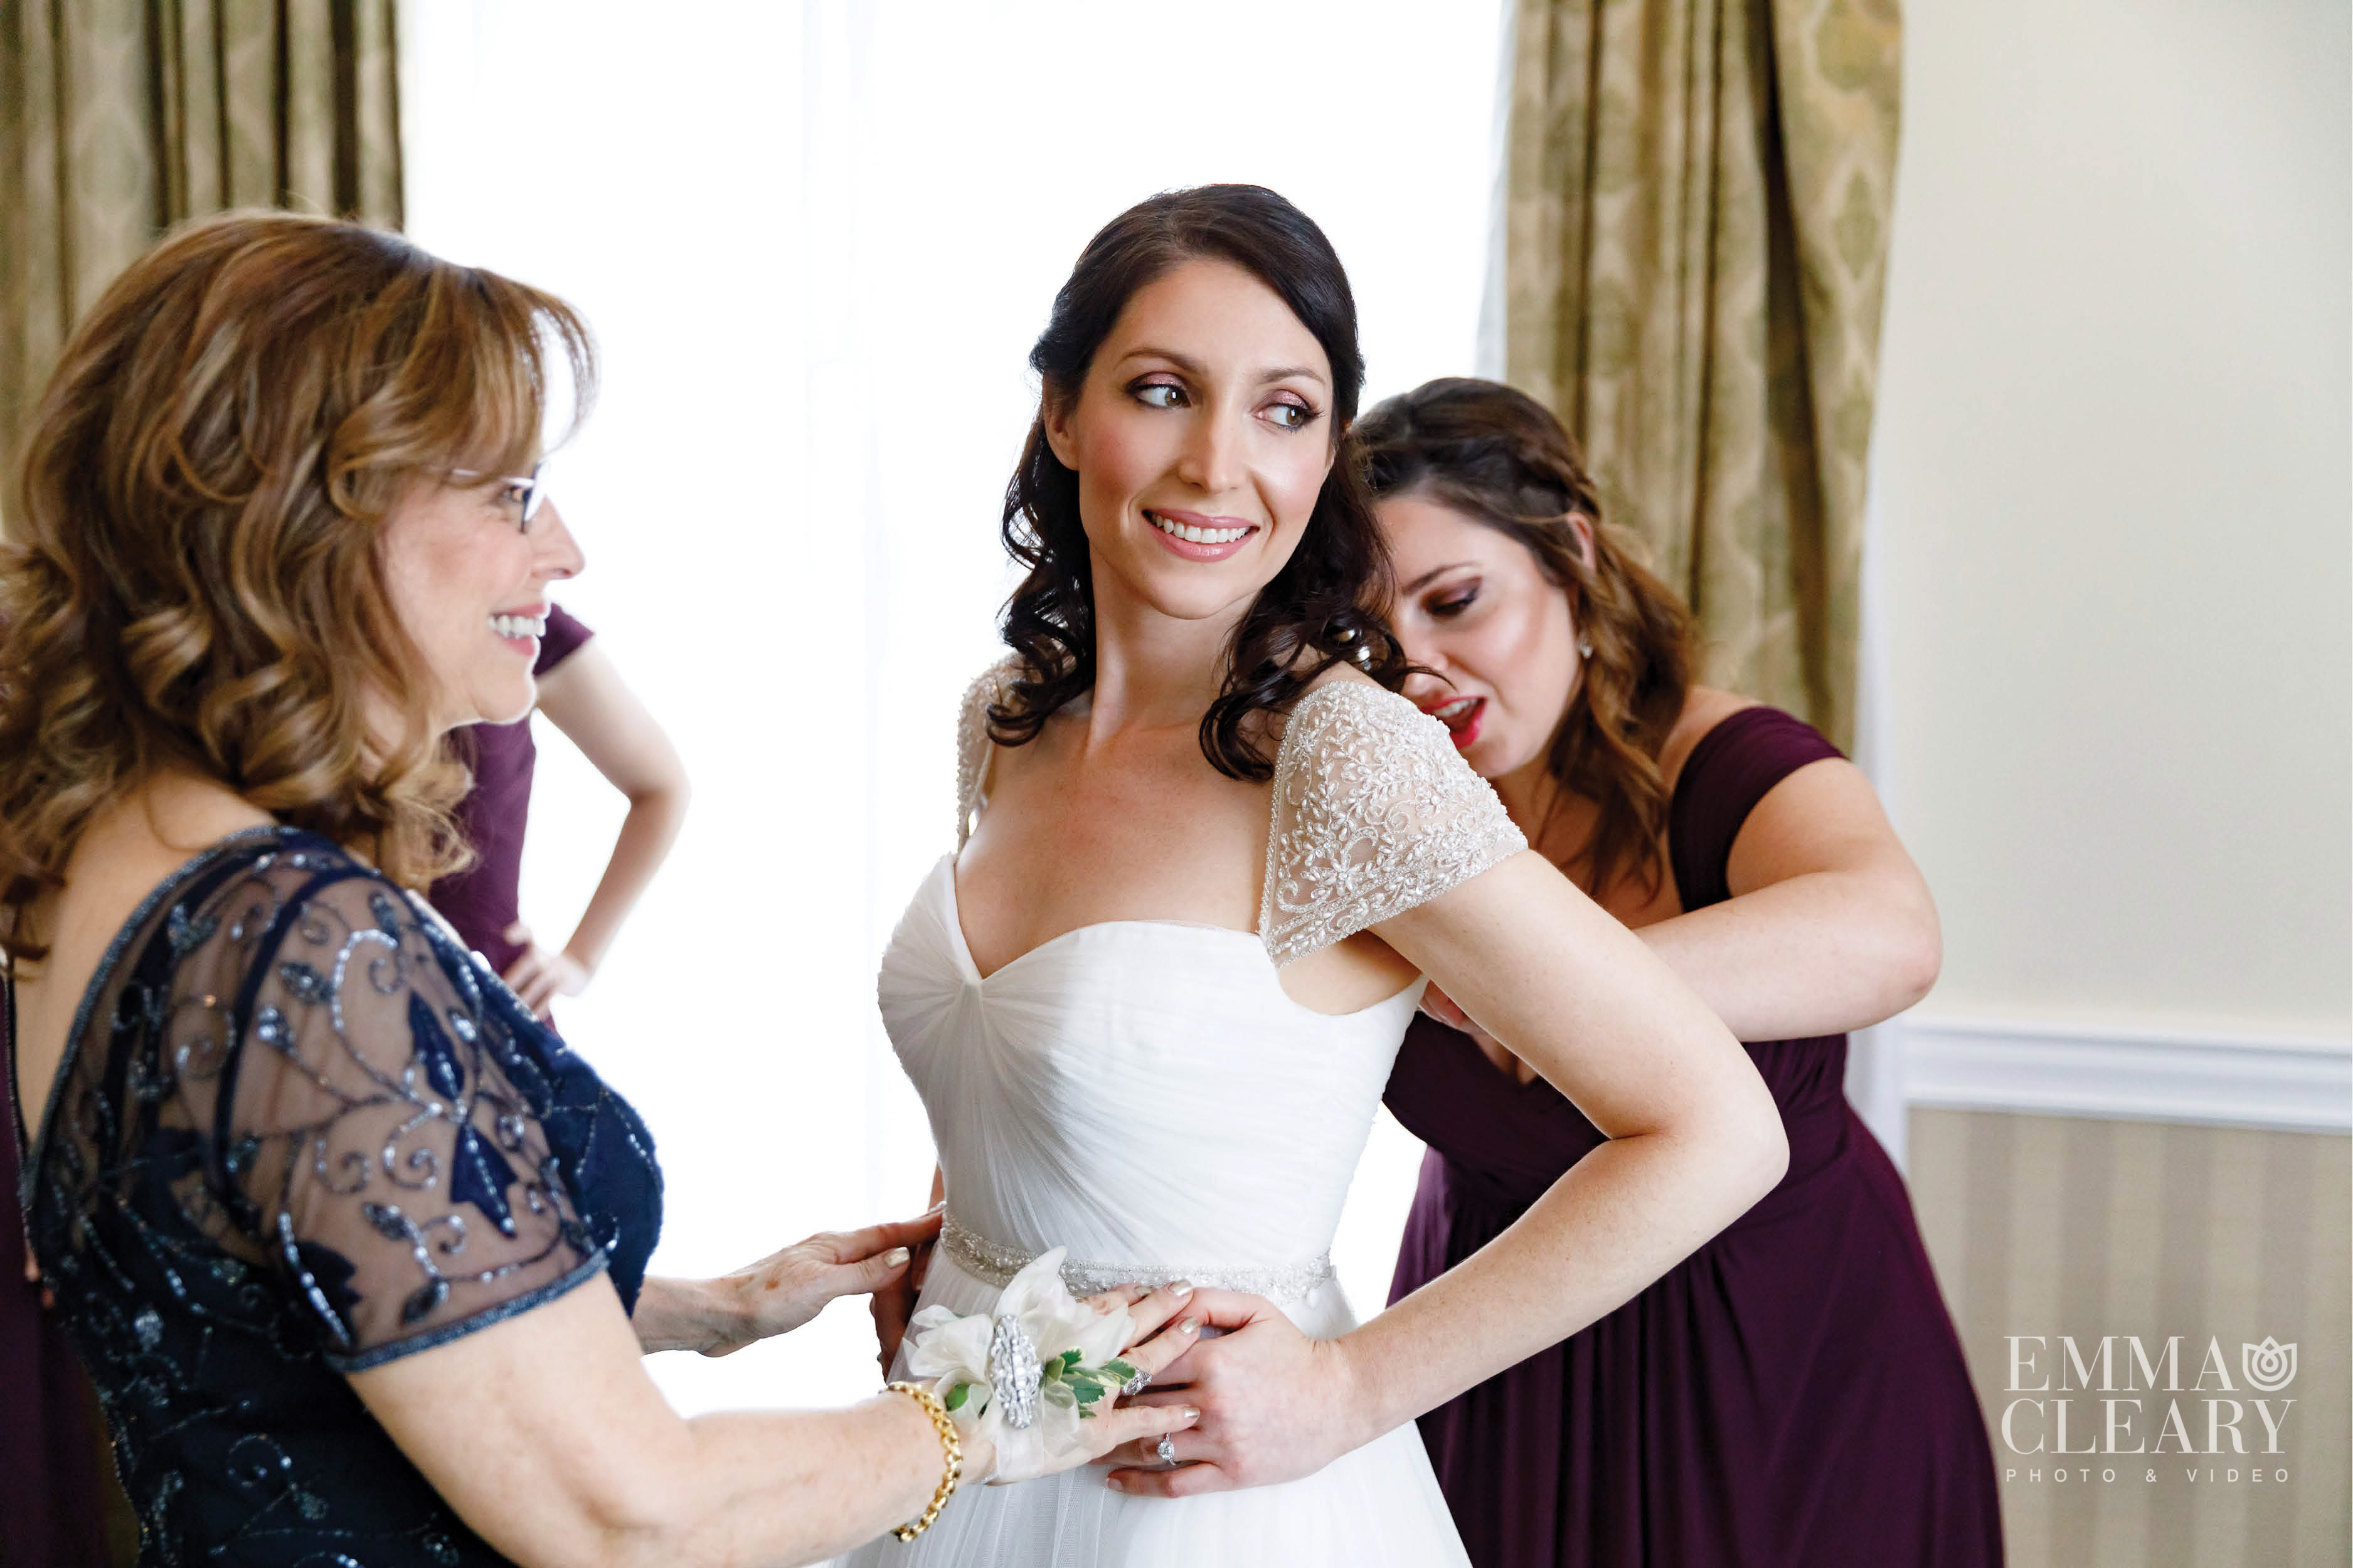 Emma_cleary_photography Hilton pearl river NY wedding4